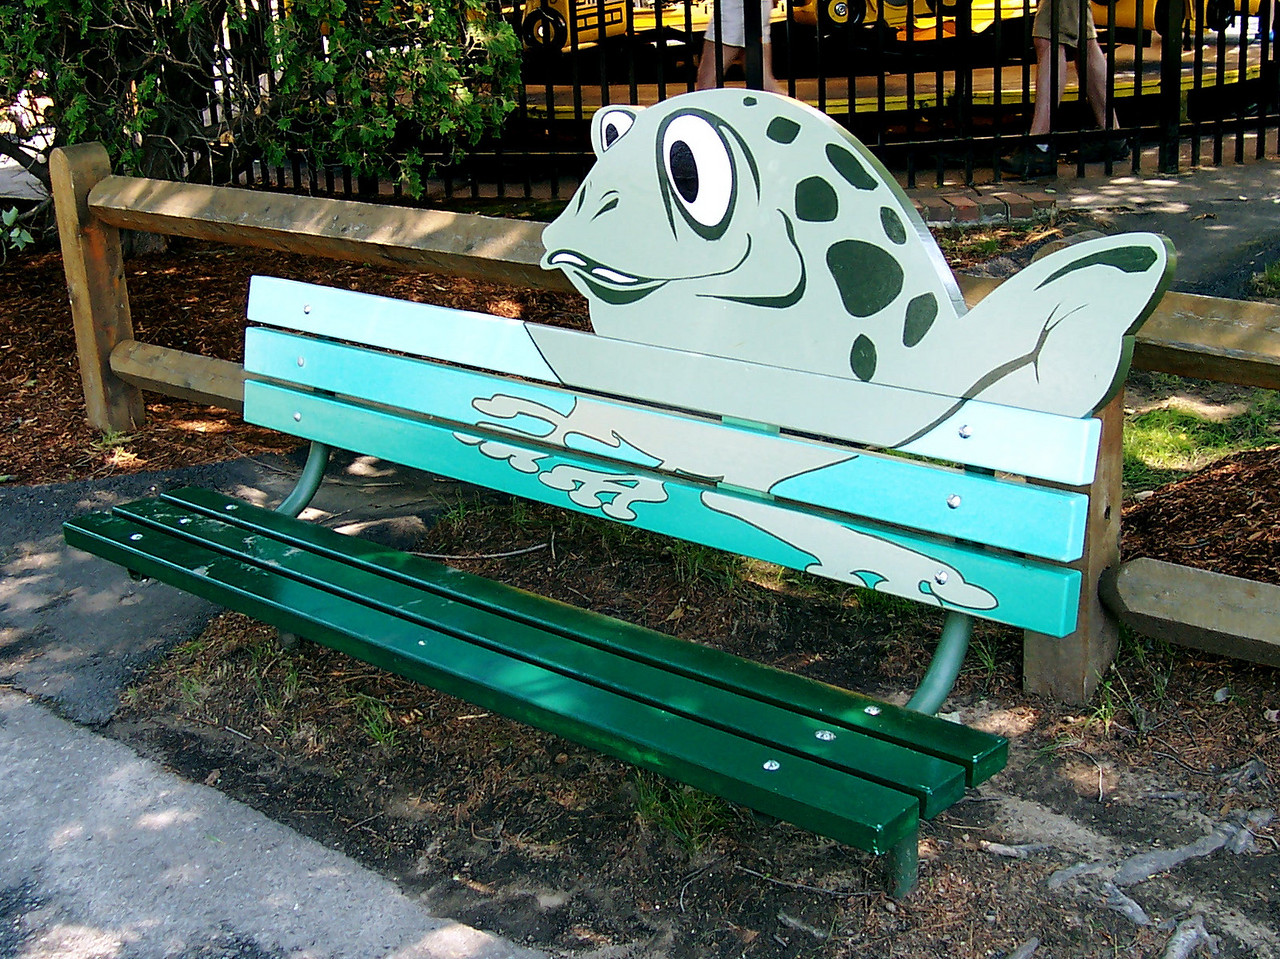 A new, themed bench across from Flower Power.